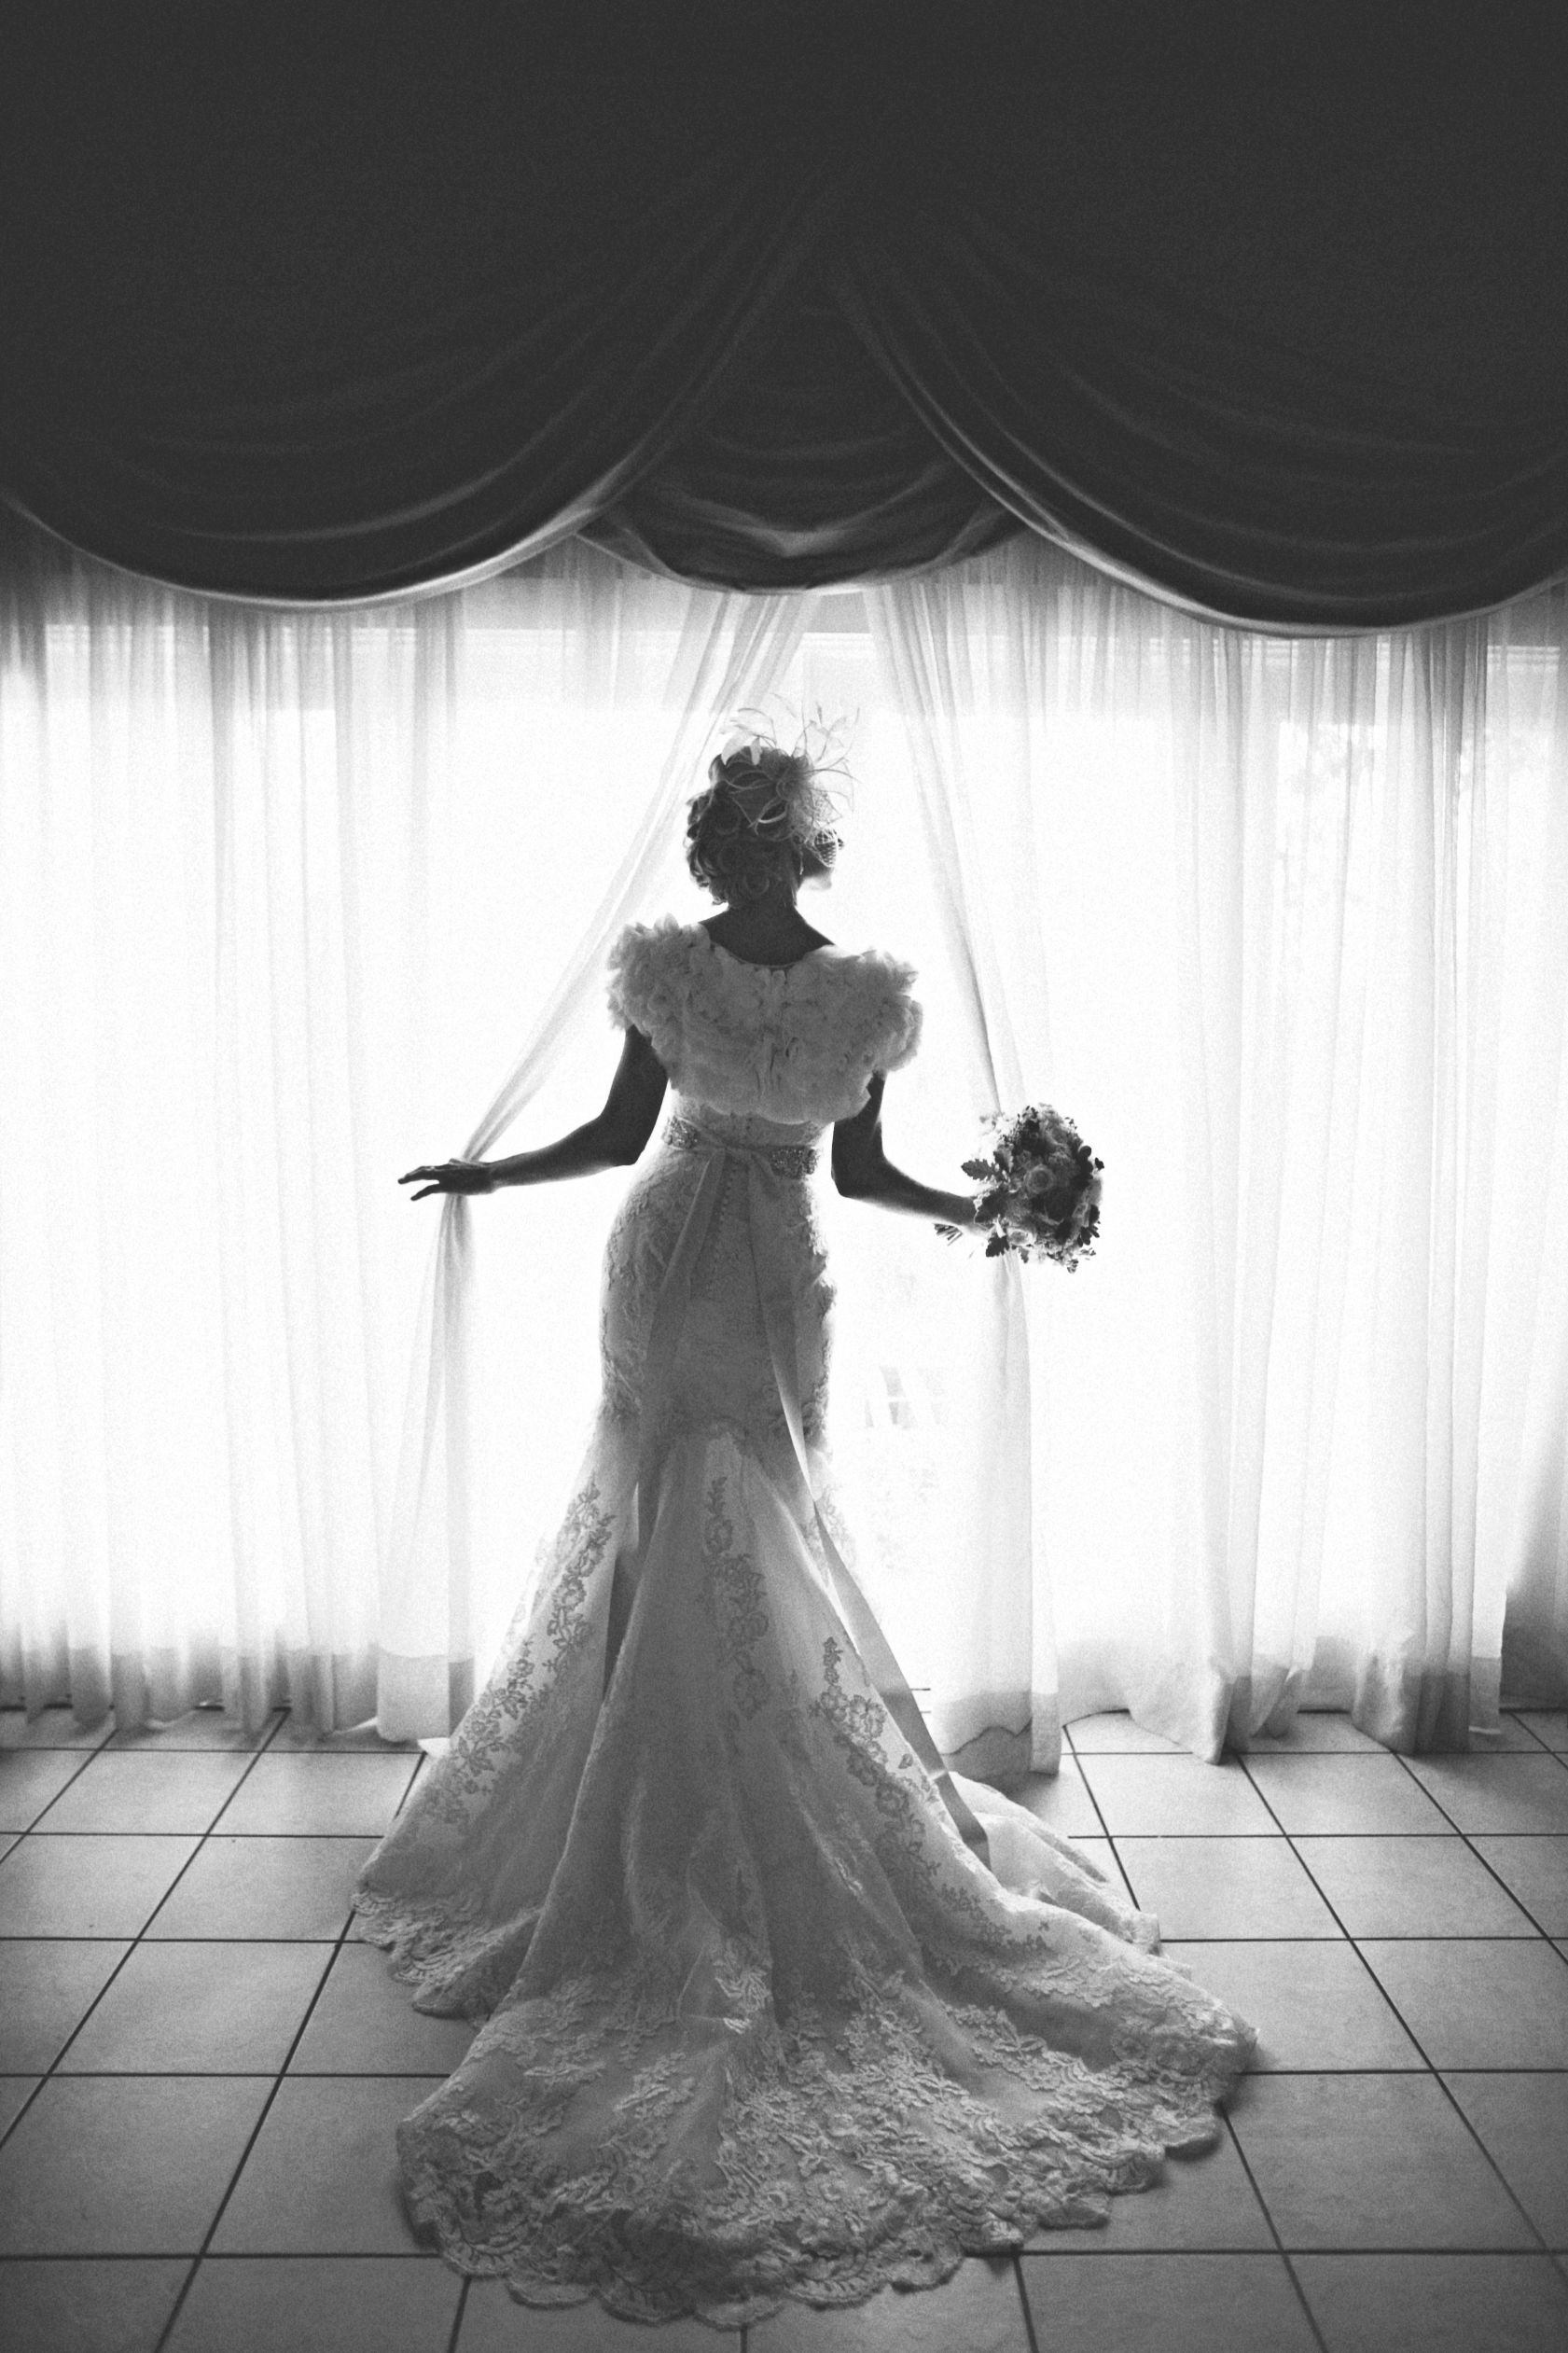 ee.allison.s.bridals29bw.jpg